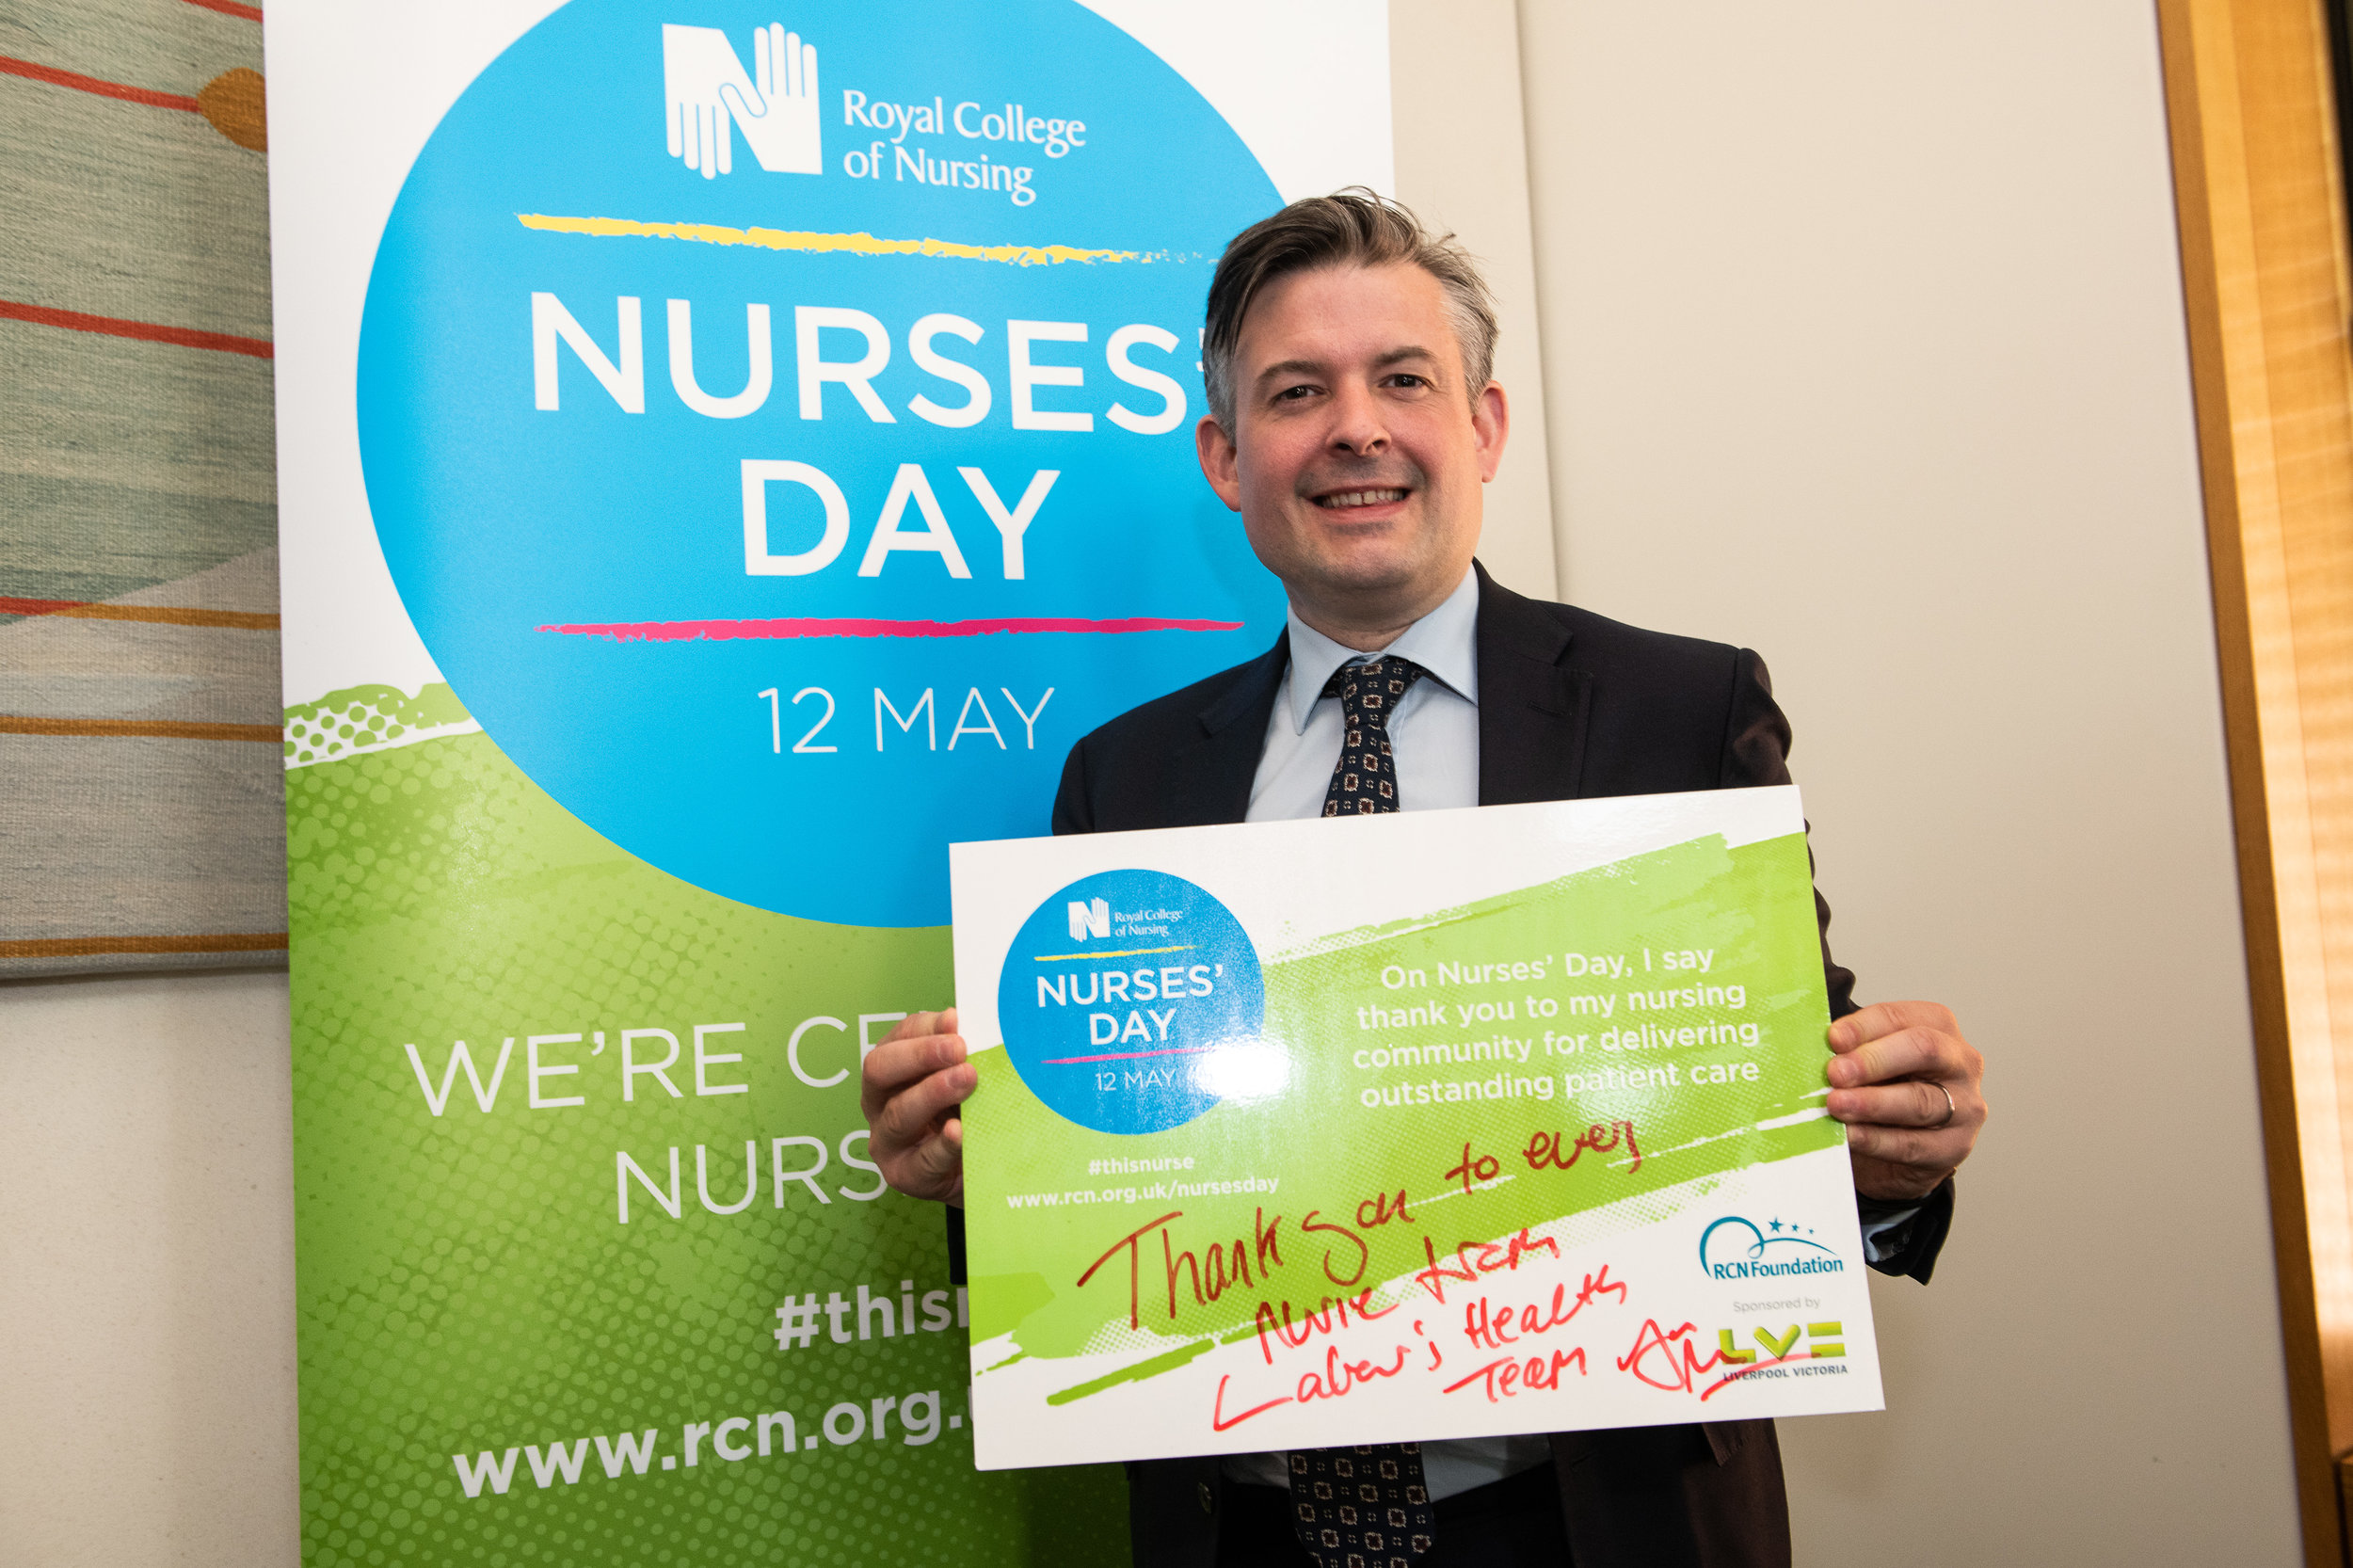 Jon Ashworth, Labour MP for Leicester South, celebrates the work of nursing staff in the UK and around the world - Monday April 30 2018